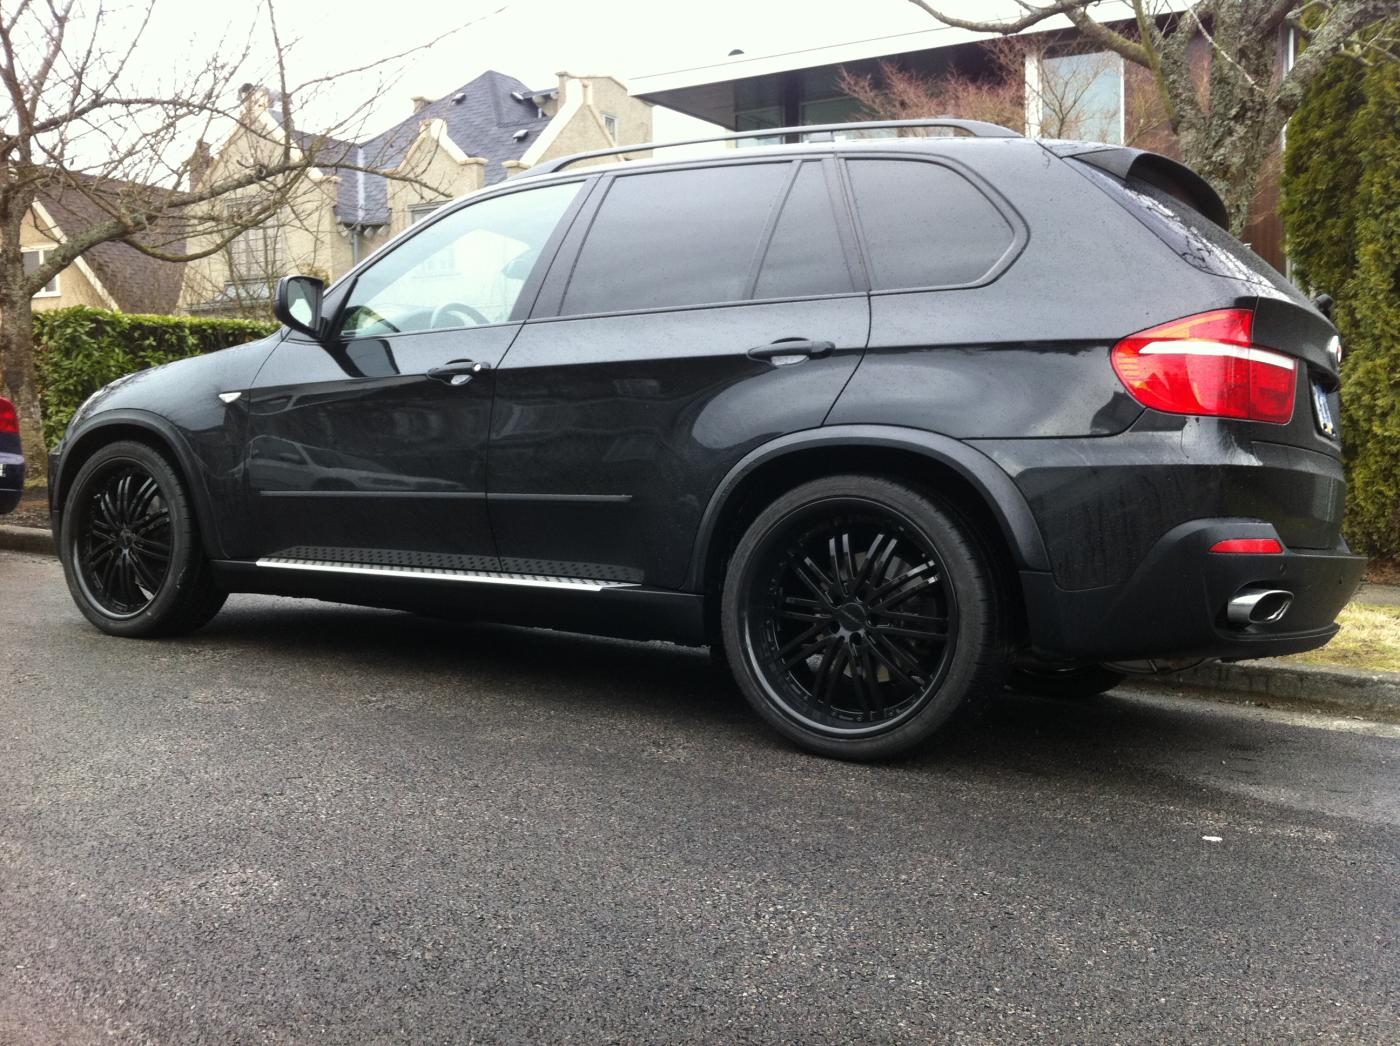 Just Got The 22 S Painted All Black Xoutpost Com